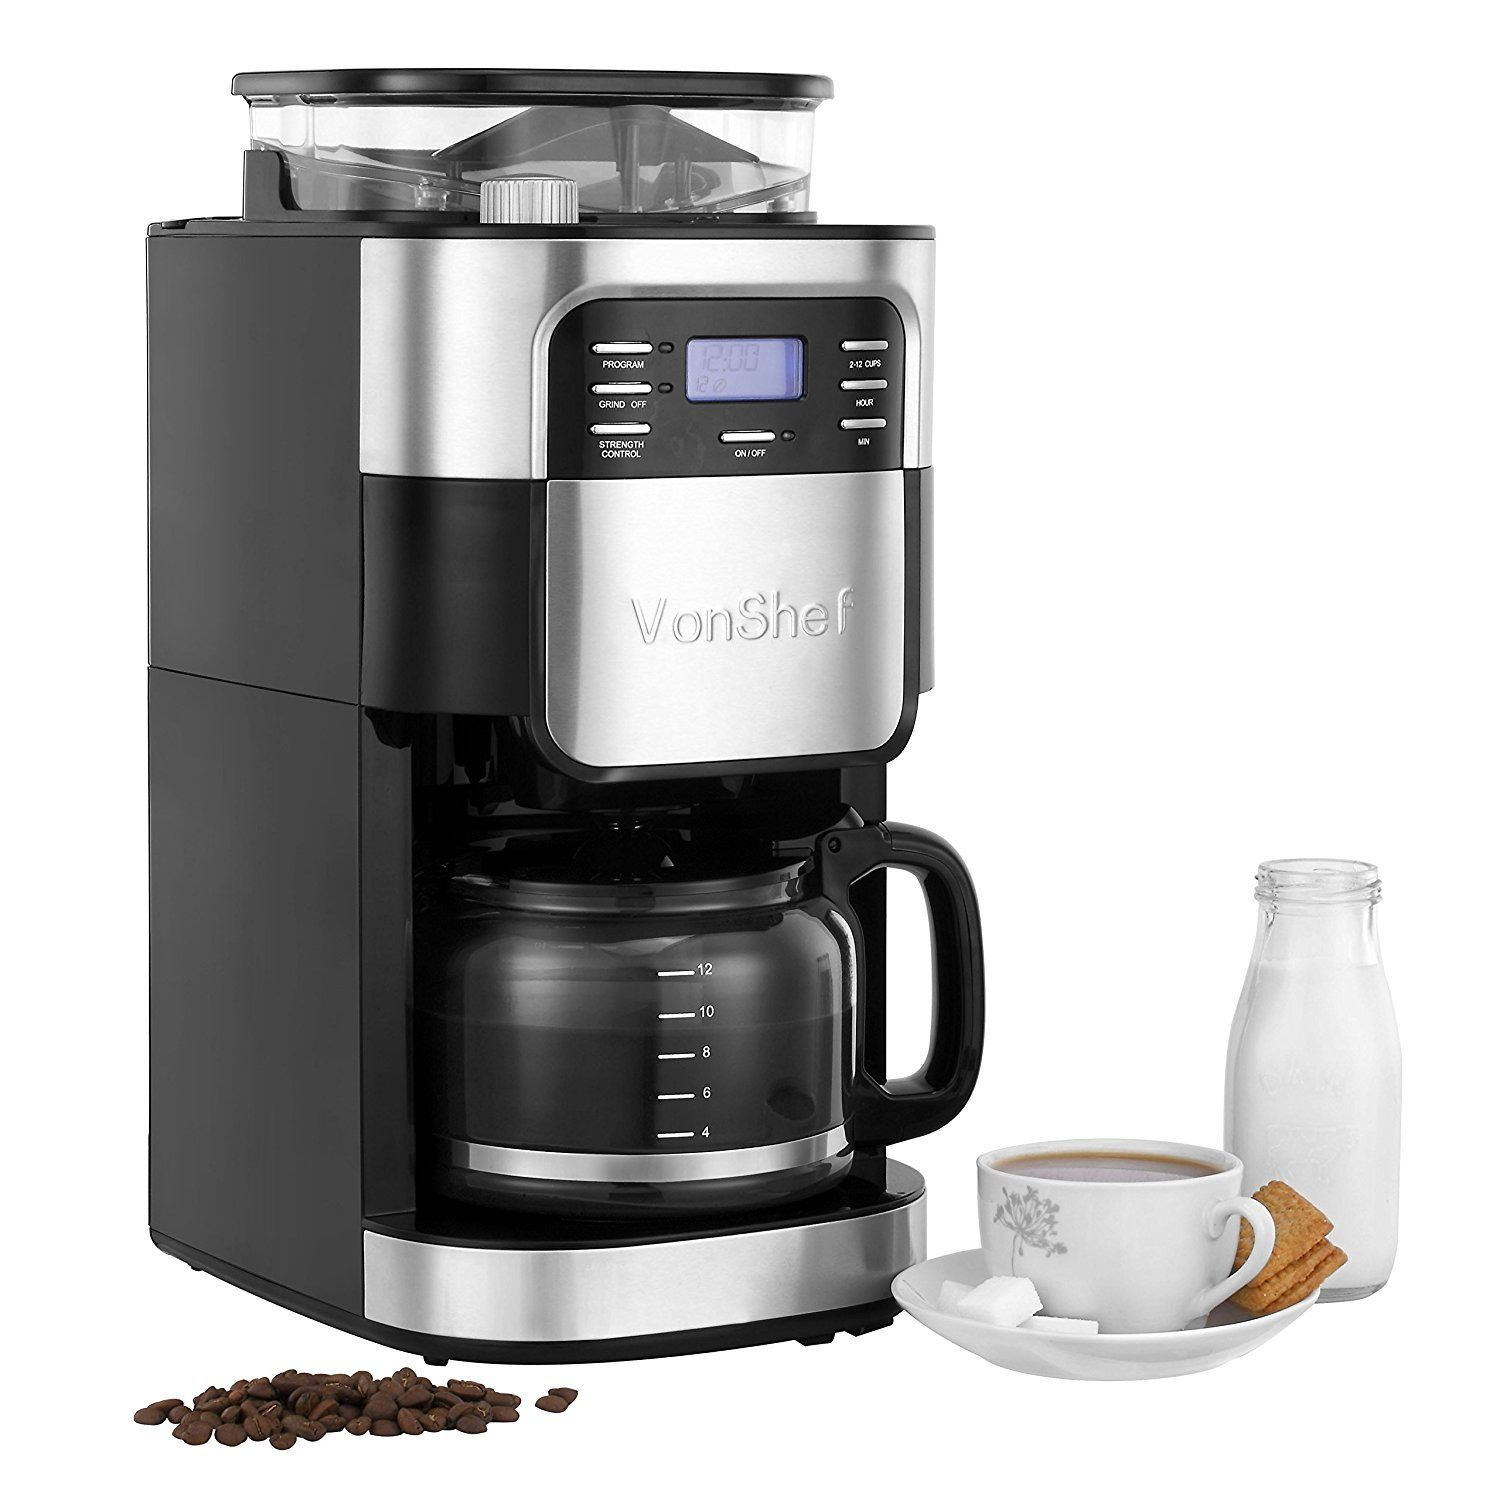 VonShef 900W Premium 12 Cup Digital Filter Coffee Maker